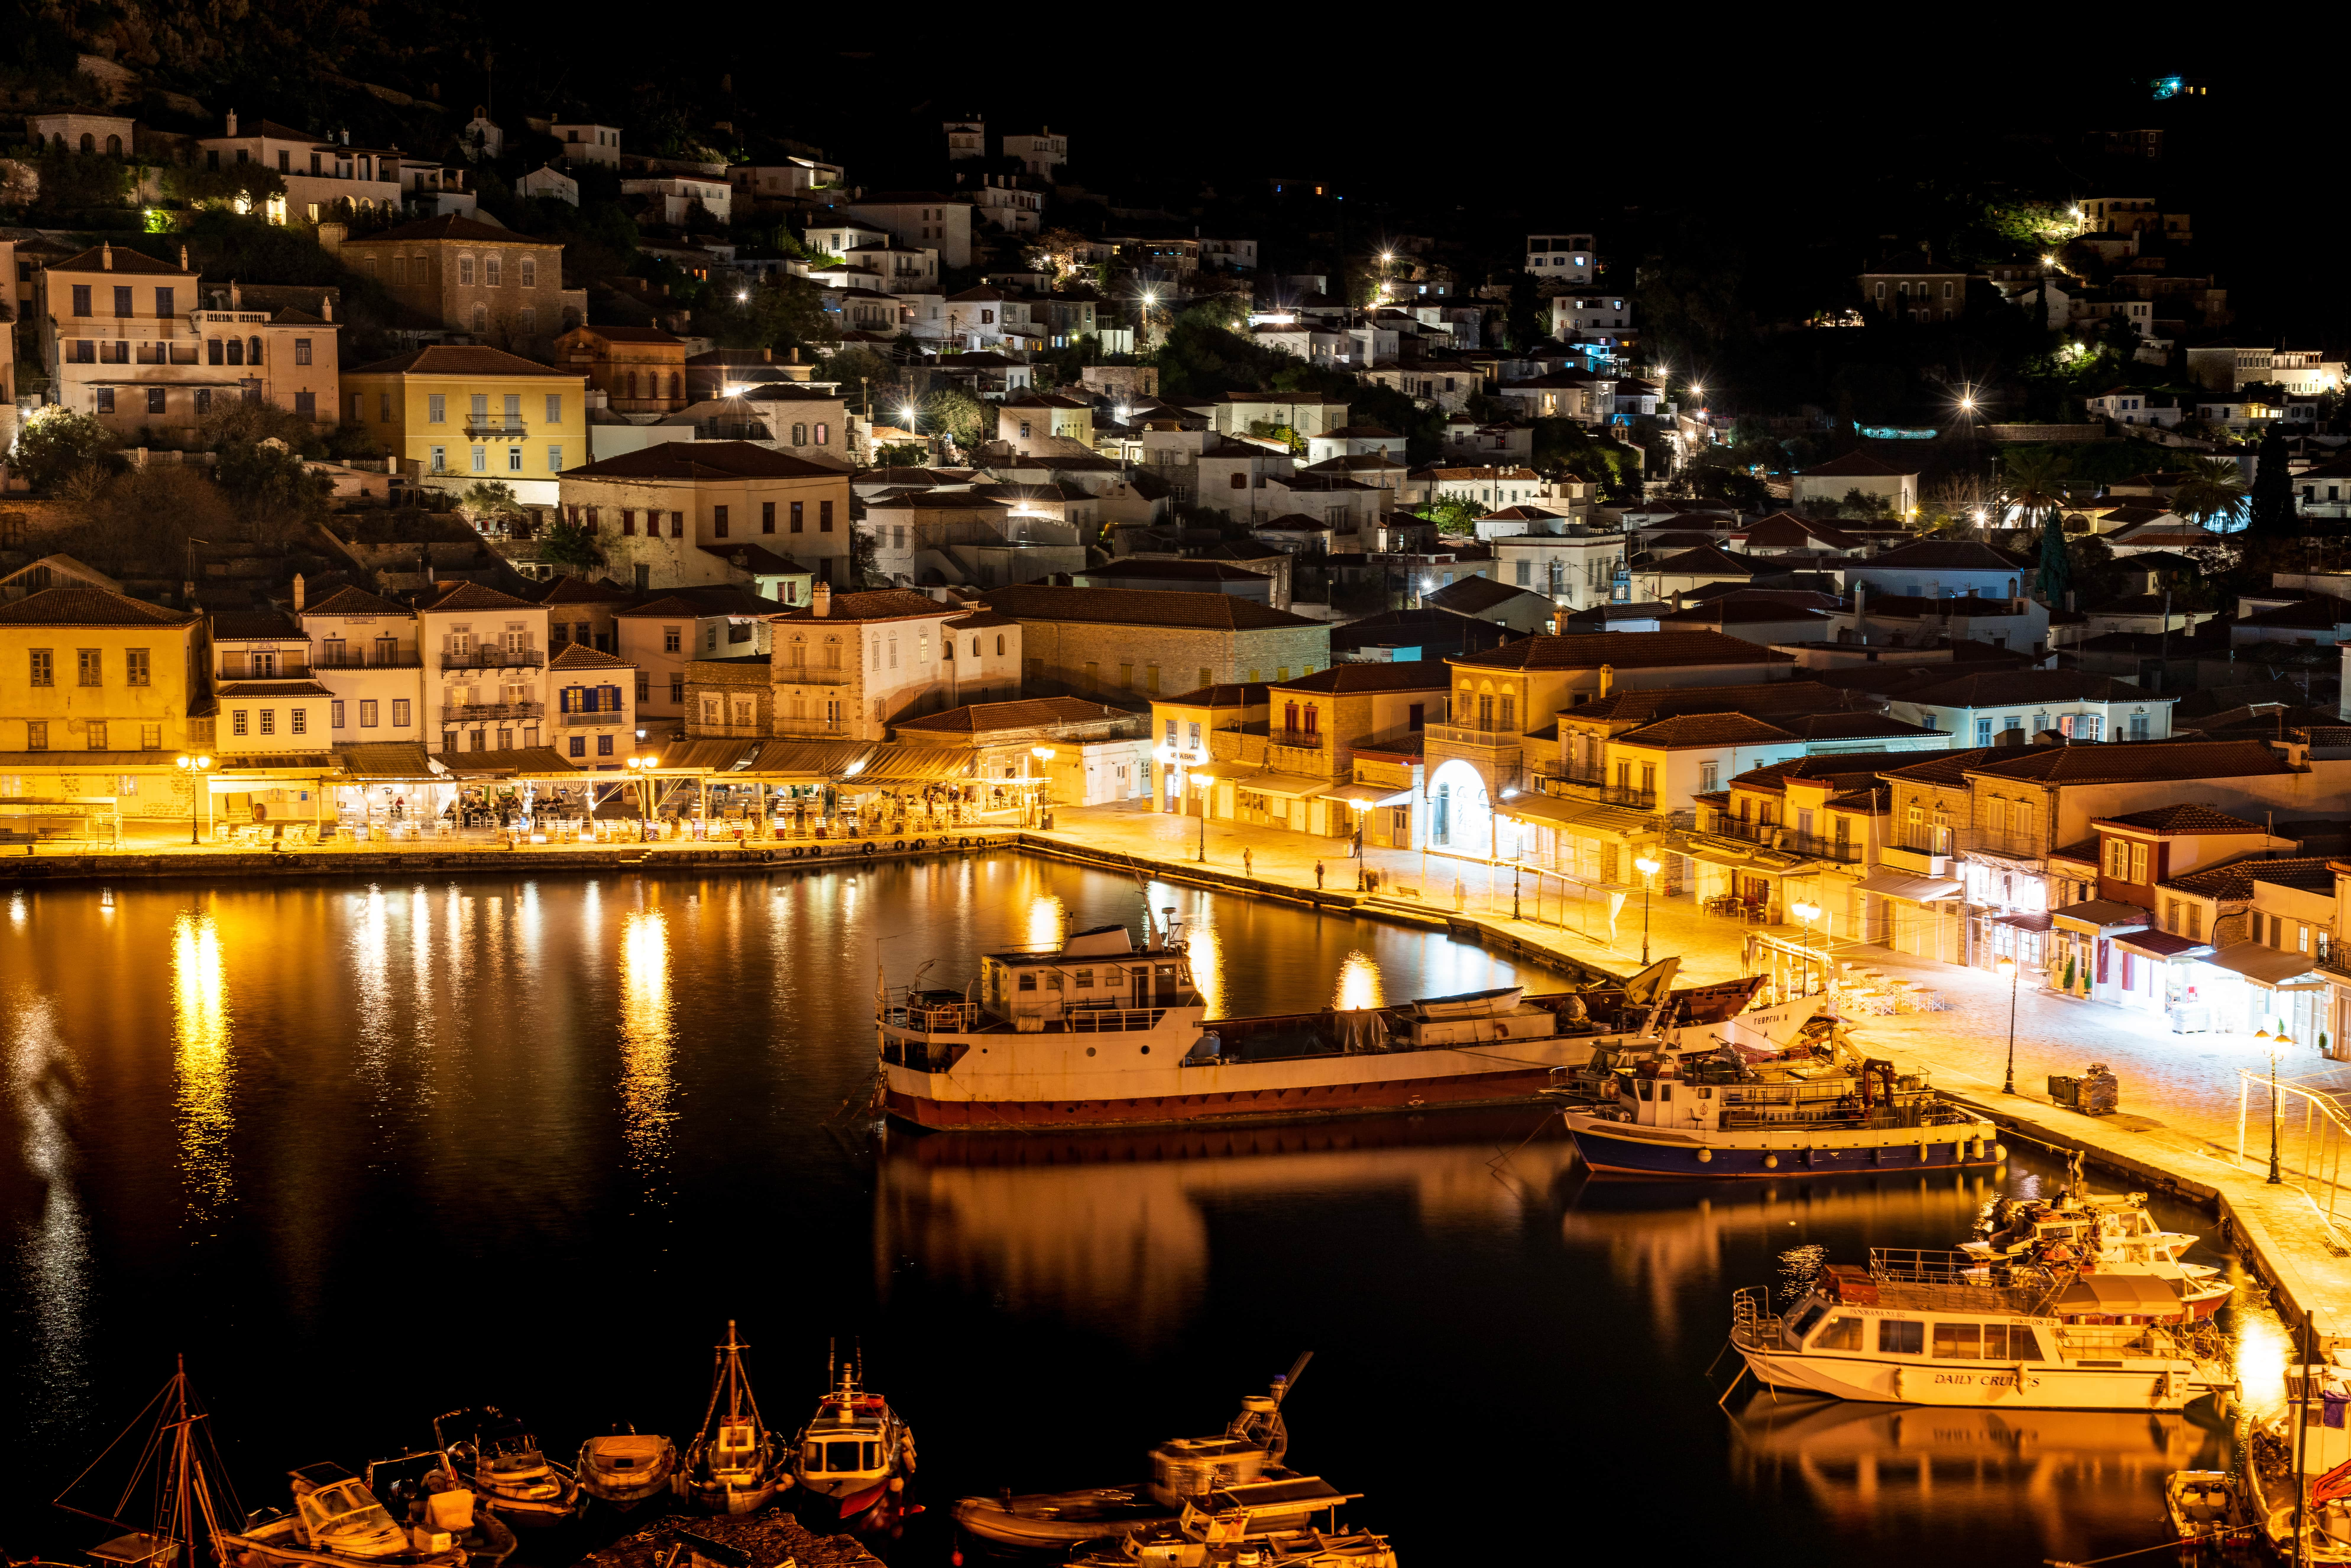 Greece - Hydra harbour at night| f/8 20sec ISO-100 54mm  | ILCE-7RM3